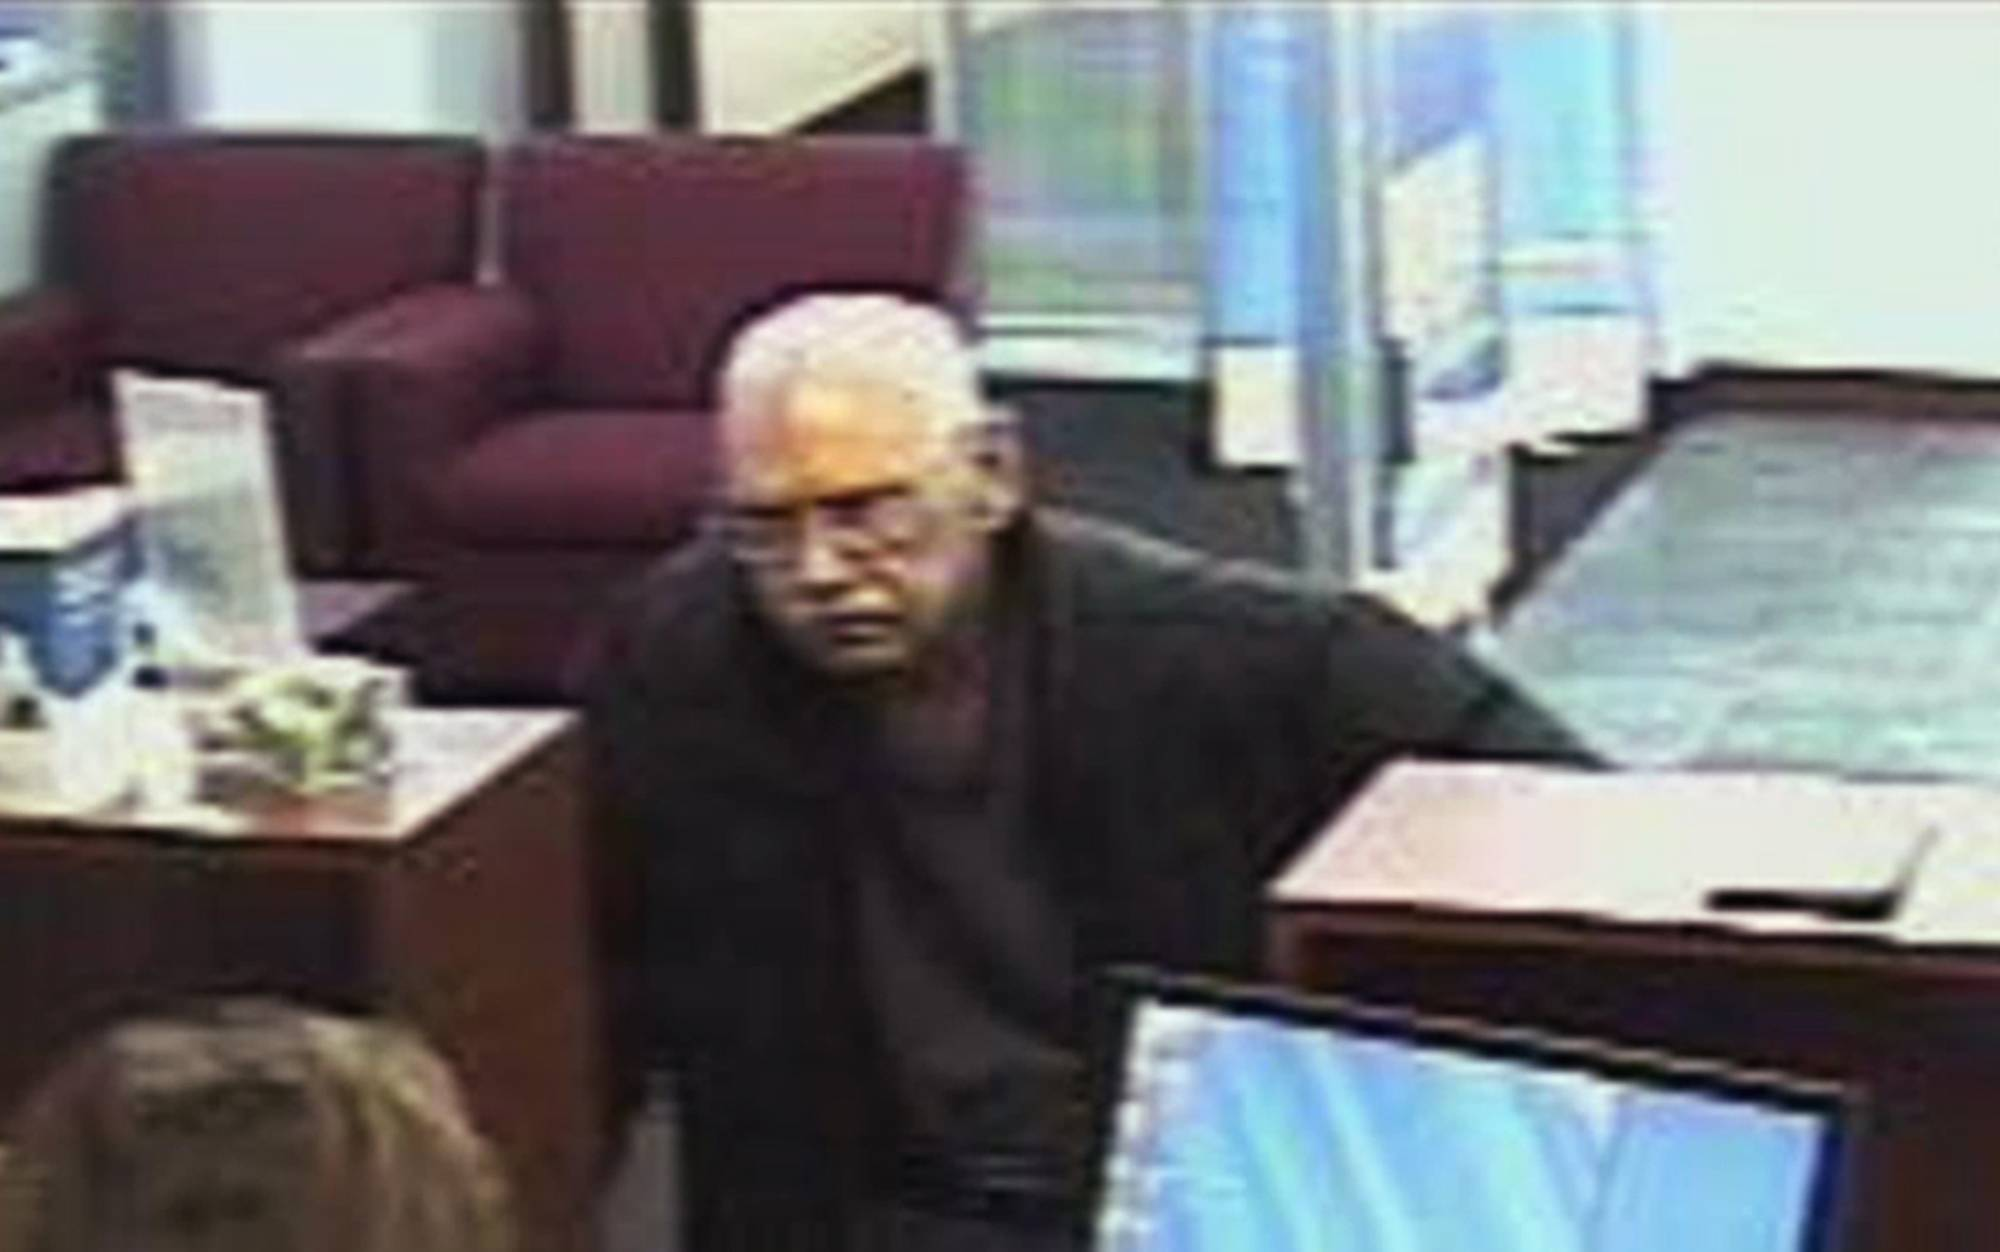 This surveillance photo shows Walter Unbehaun robbing a bank in Niles in 2013